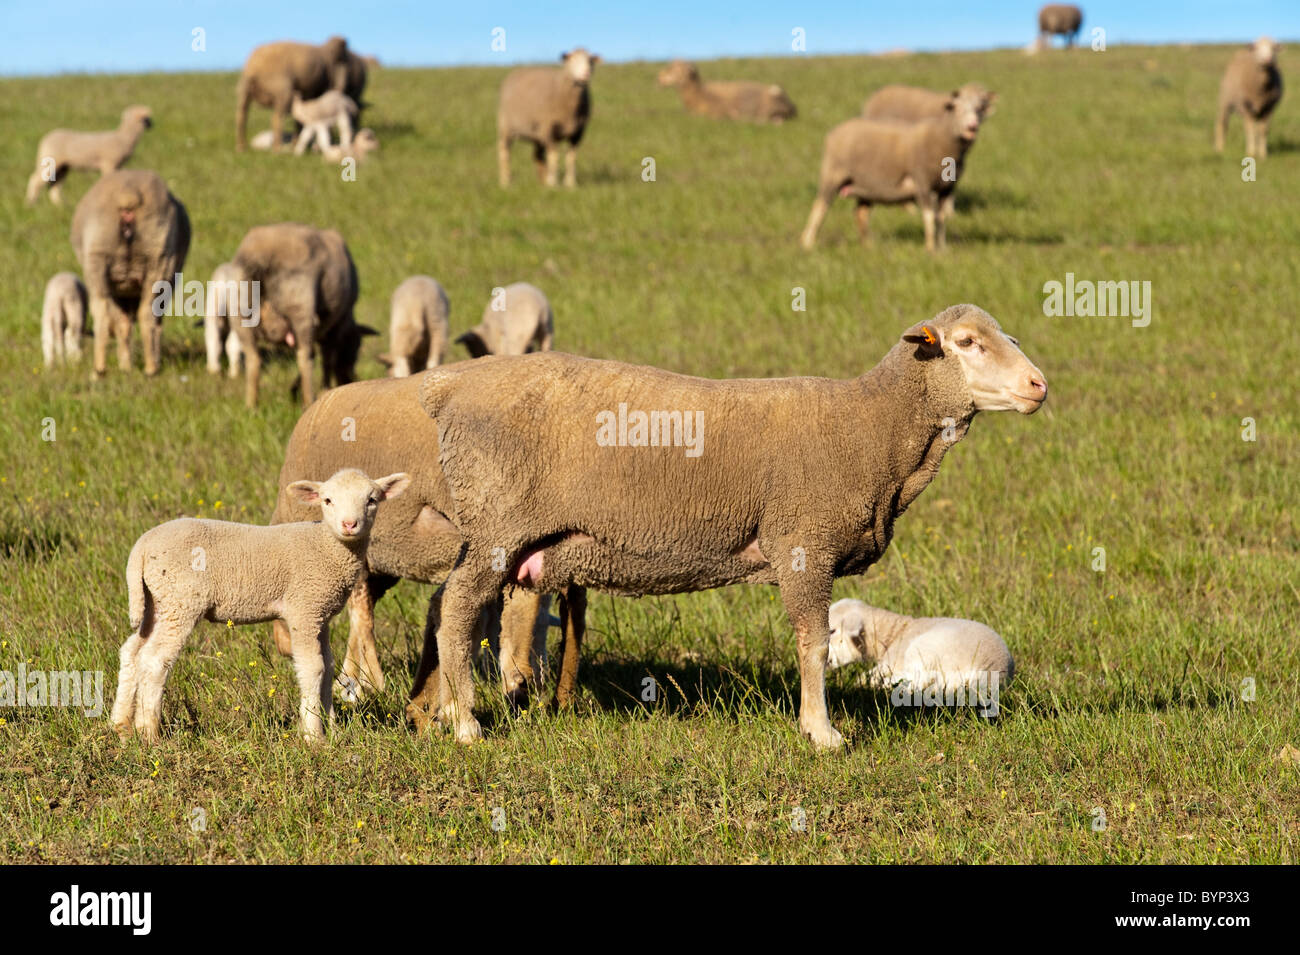 Ewe with lambs in Ouplaas, Western Cape, South Africa - Stock Image